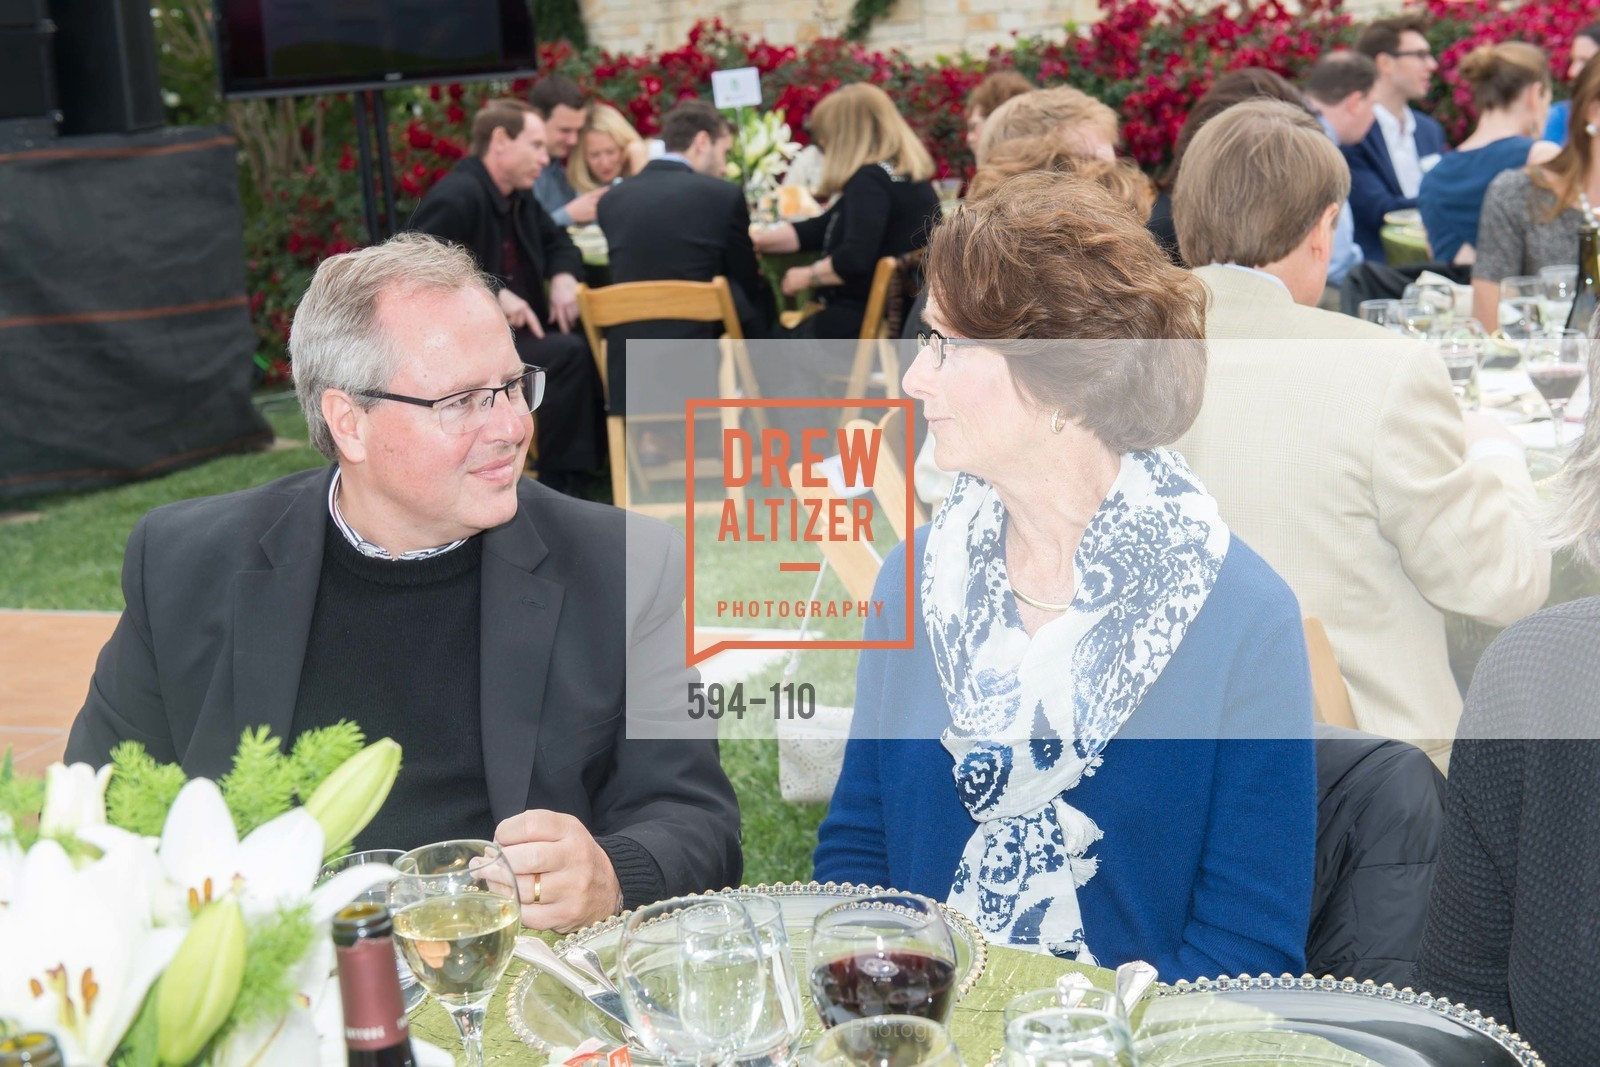 Elizabth Sippel, LYME AID 2015 Benefiting the Bay Area Lyme Foundation, Private Residence, May 16th, 2015,Drew Altizer, Drew Altizer Photography, full-service agency, private events, San Francisco photographer, photographer california